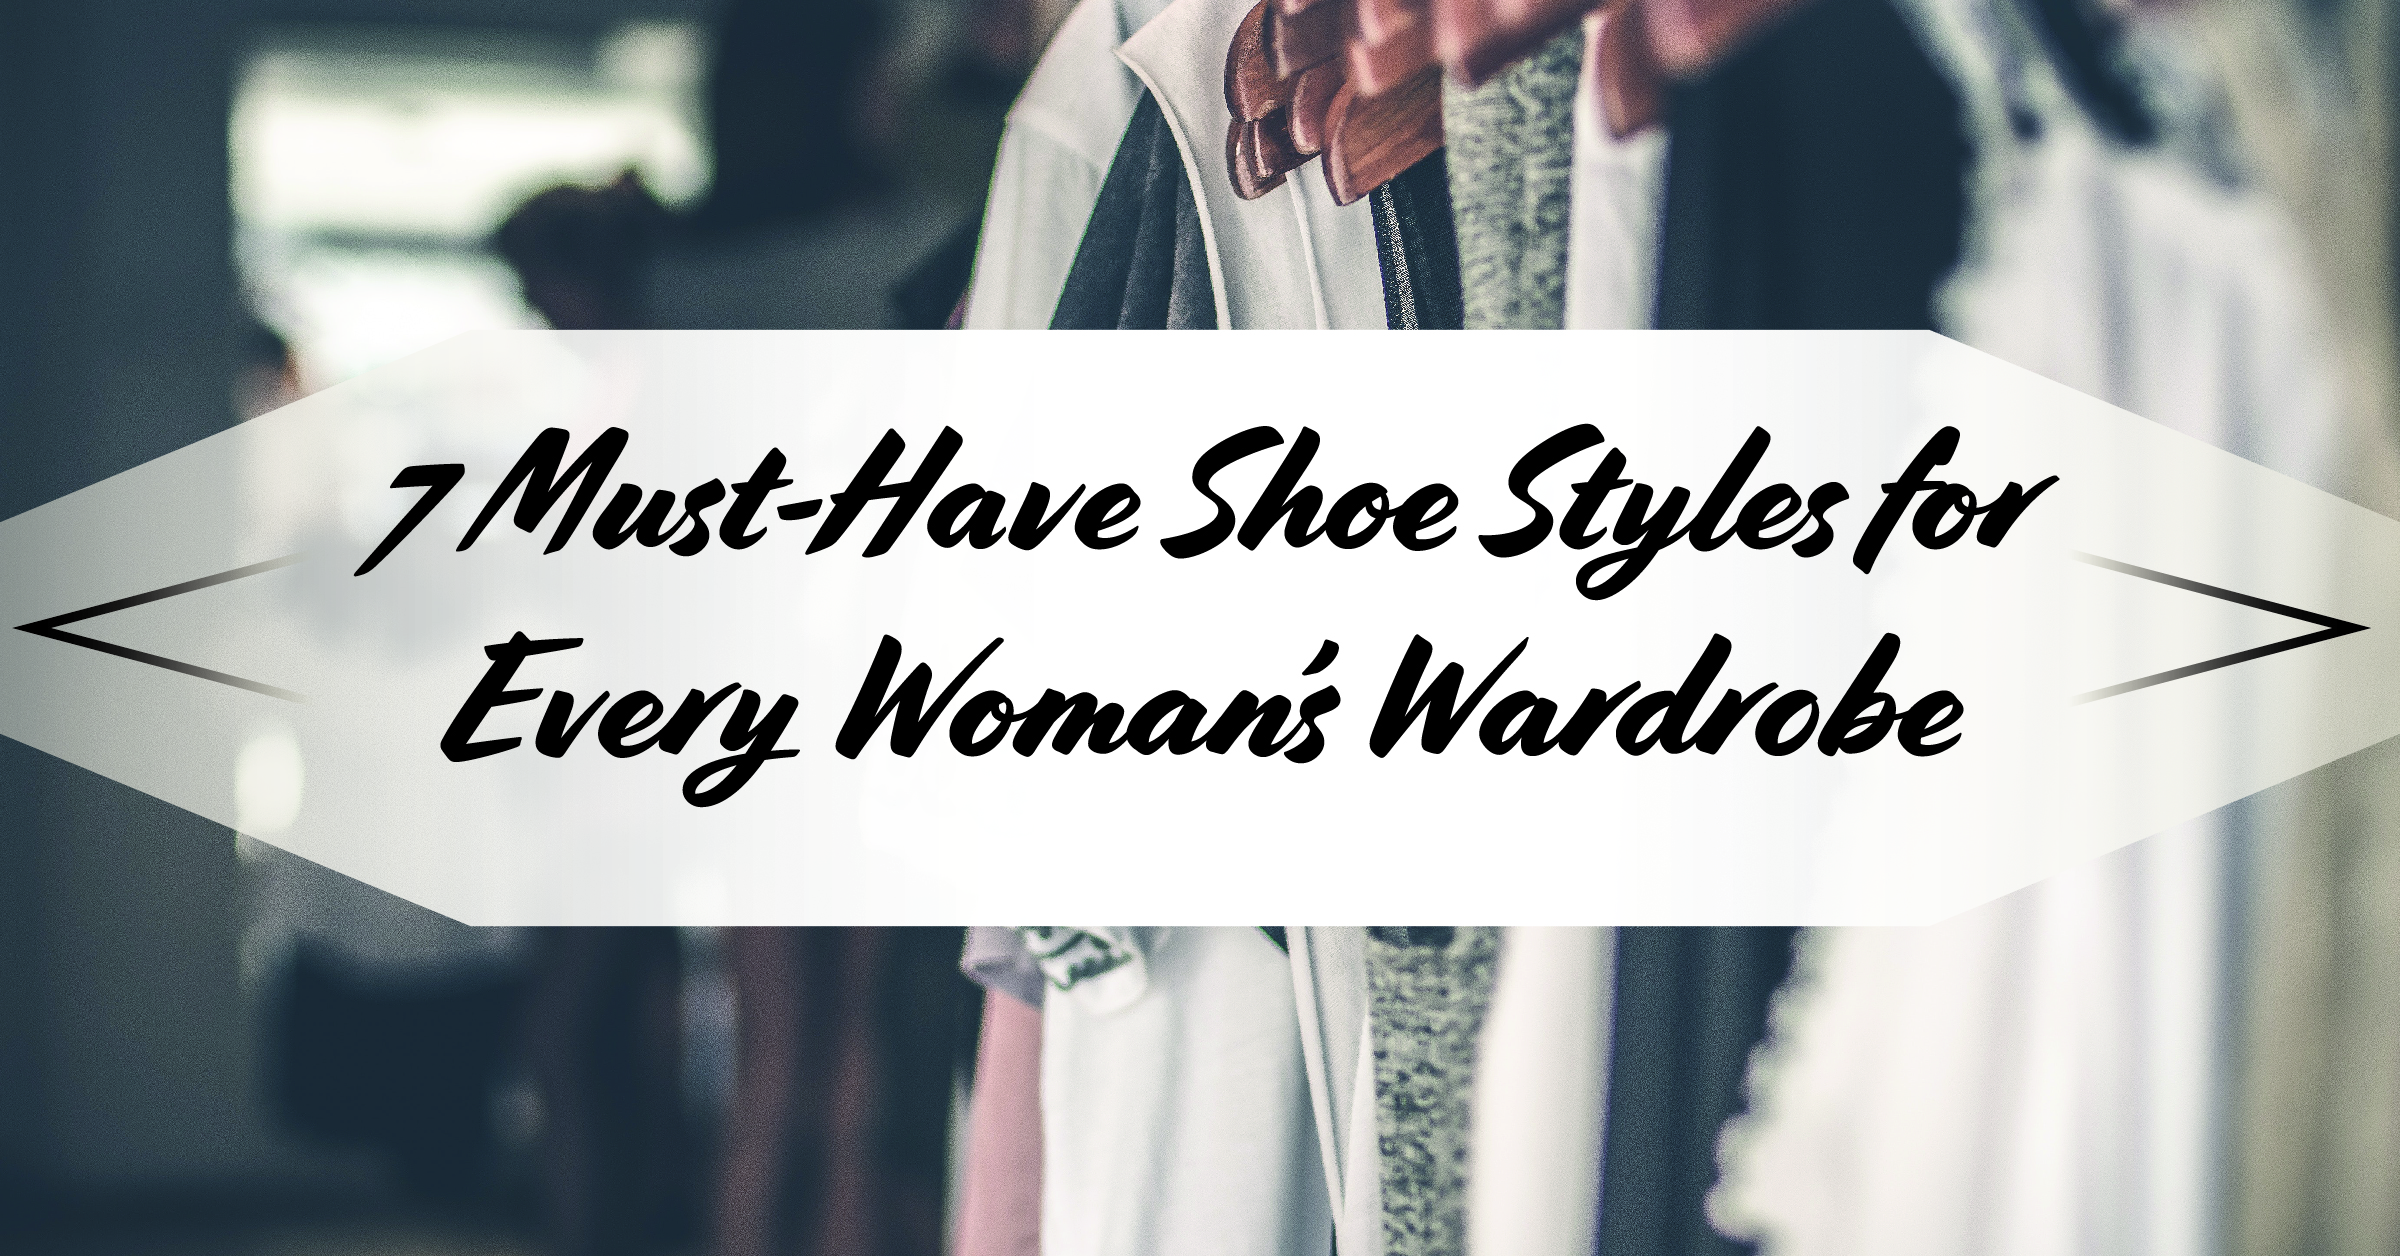 7 Must-Have Shoe Styles For Every Woman's Wardrobe